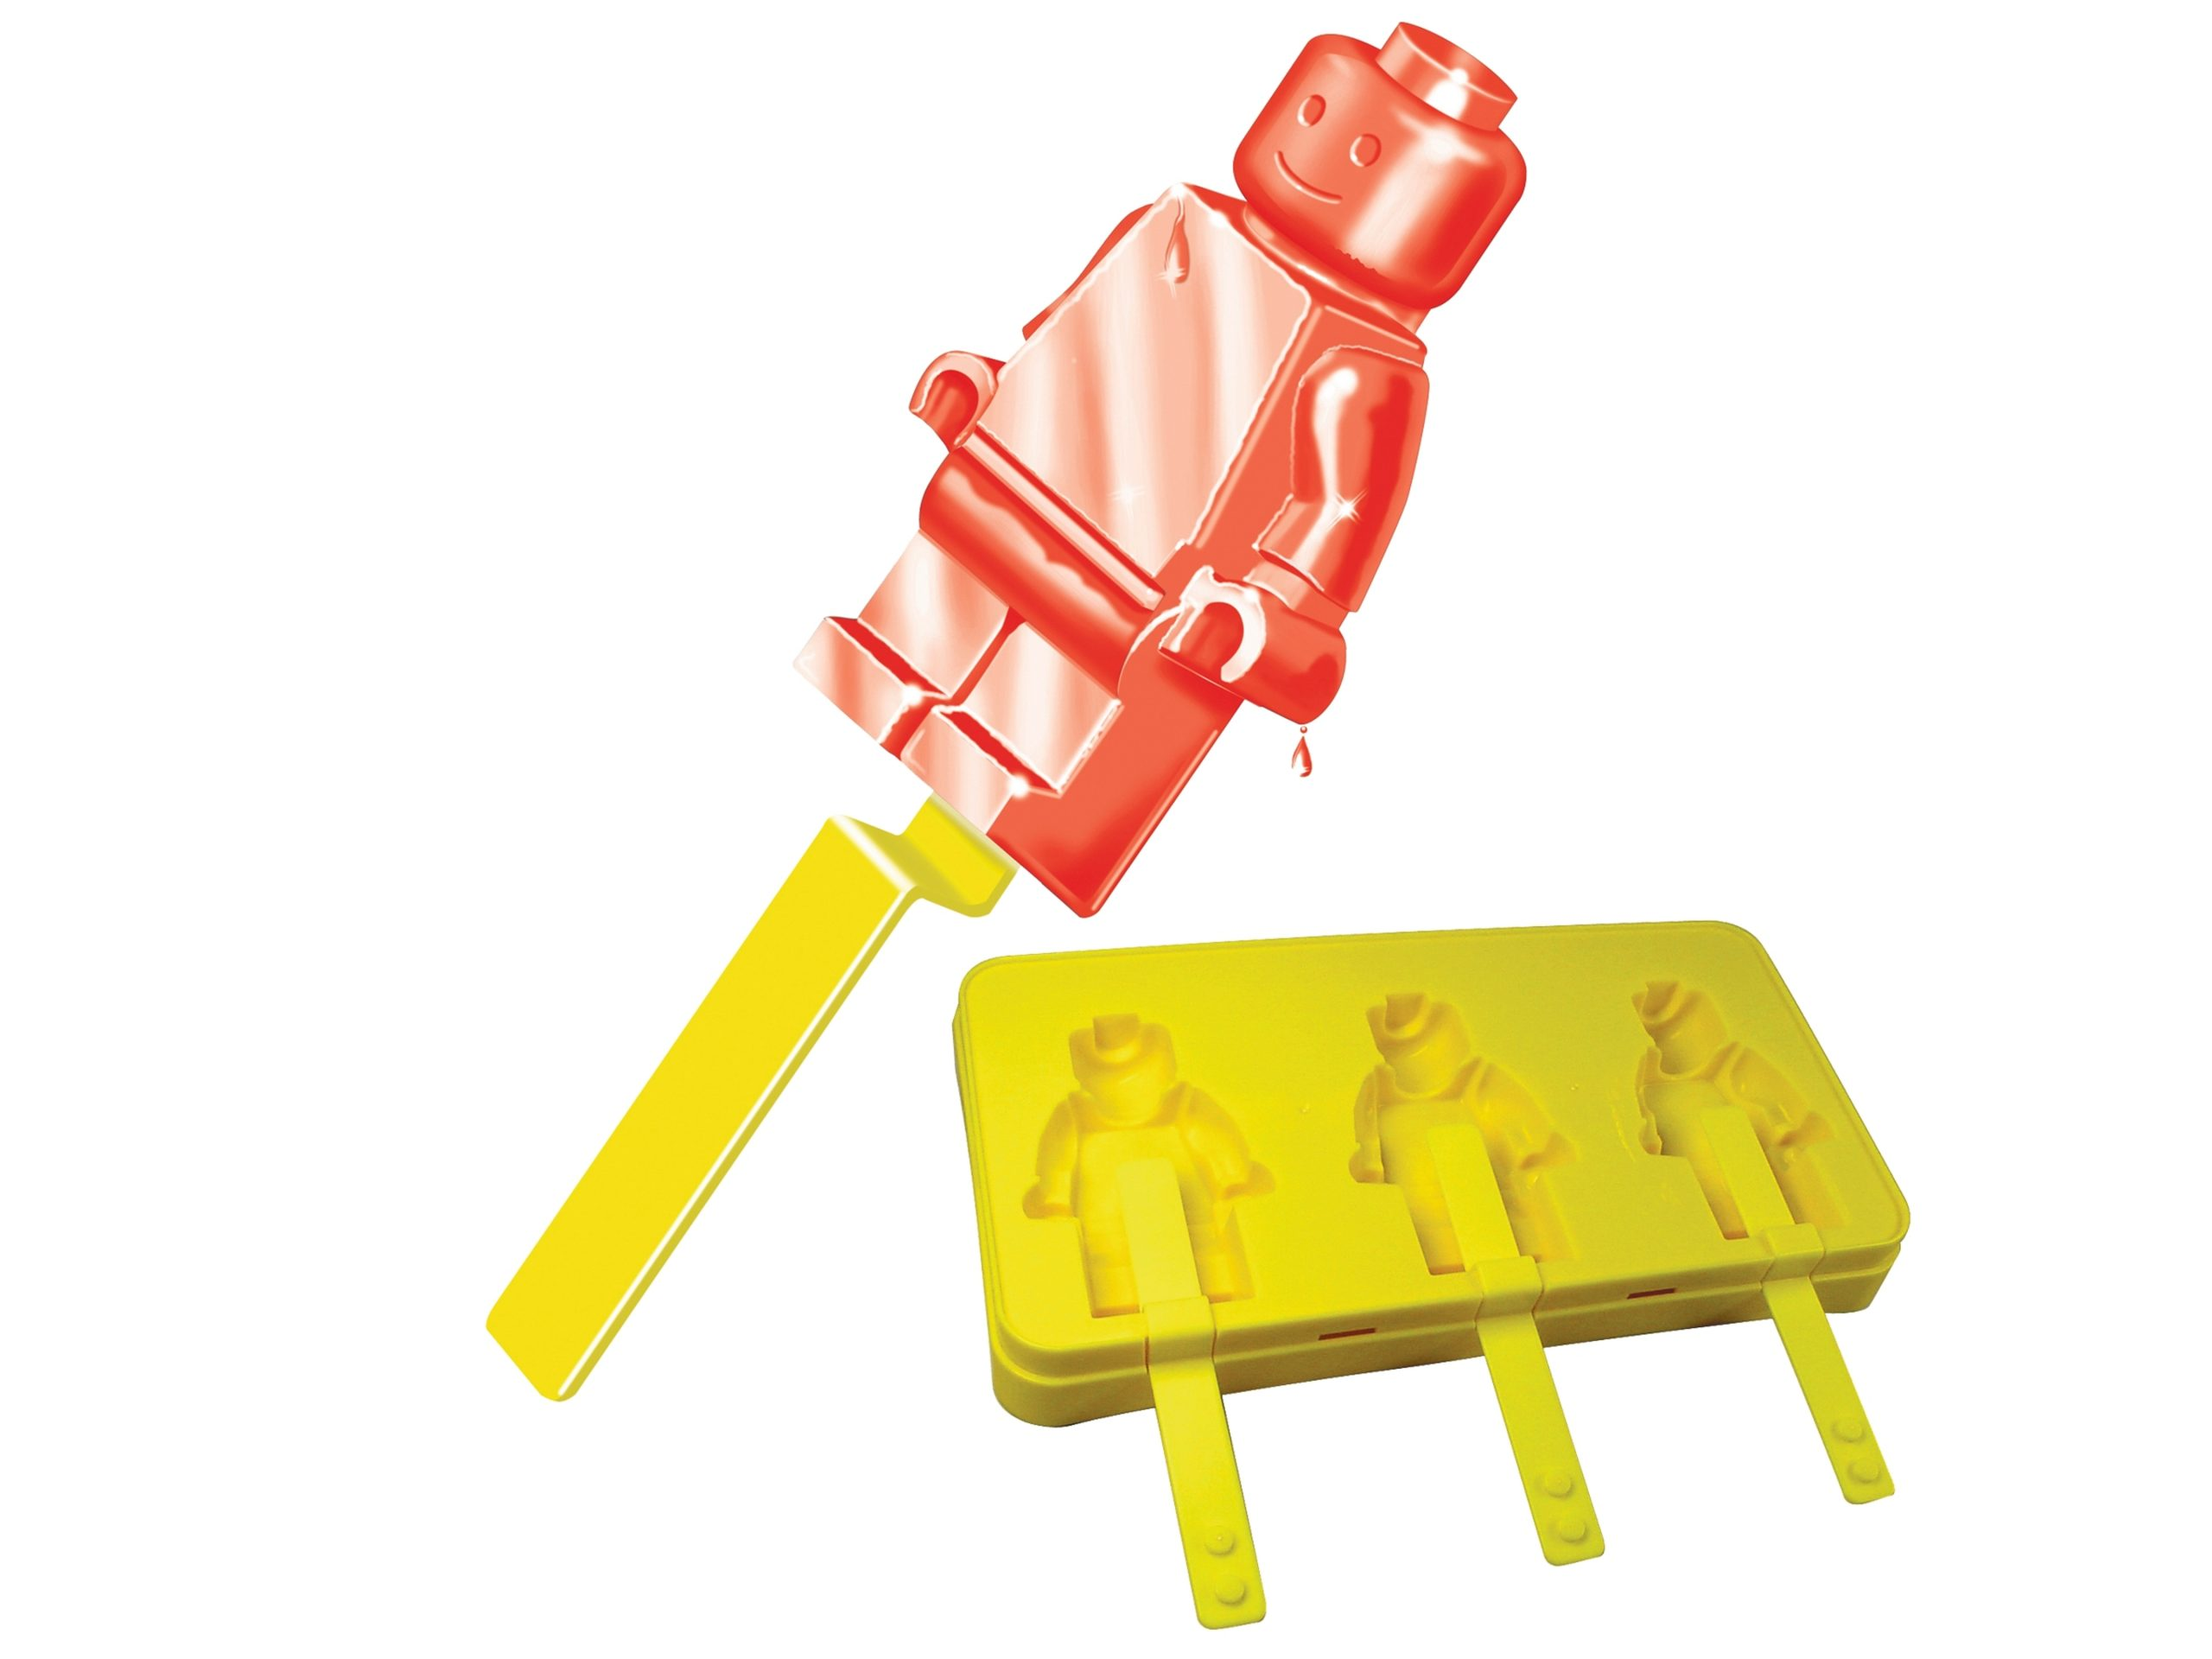 lego 852341 minifigure ice lollipop mould scaled